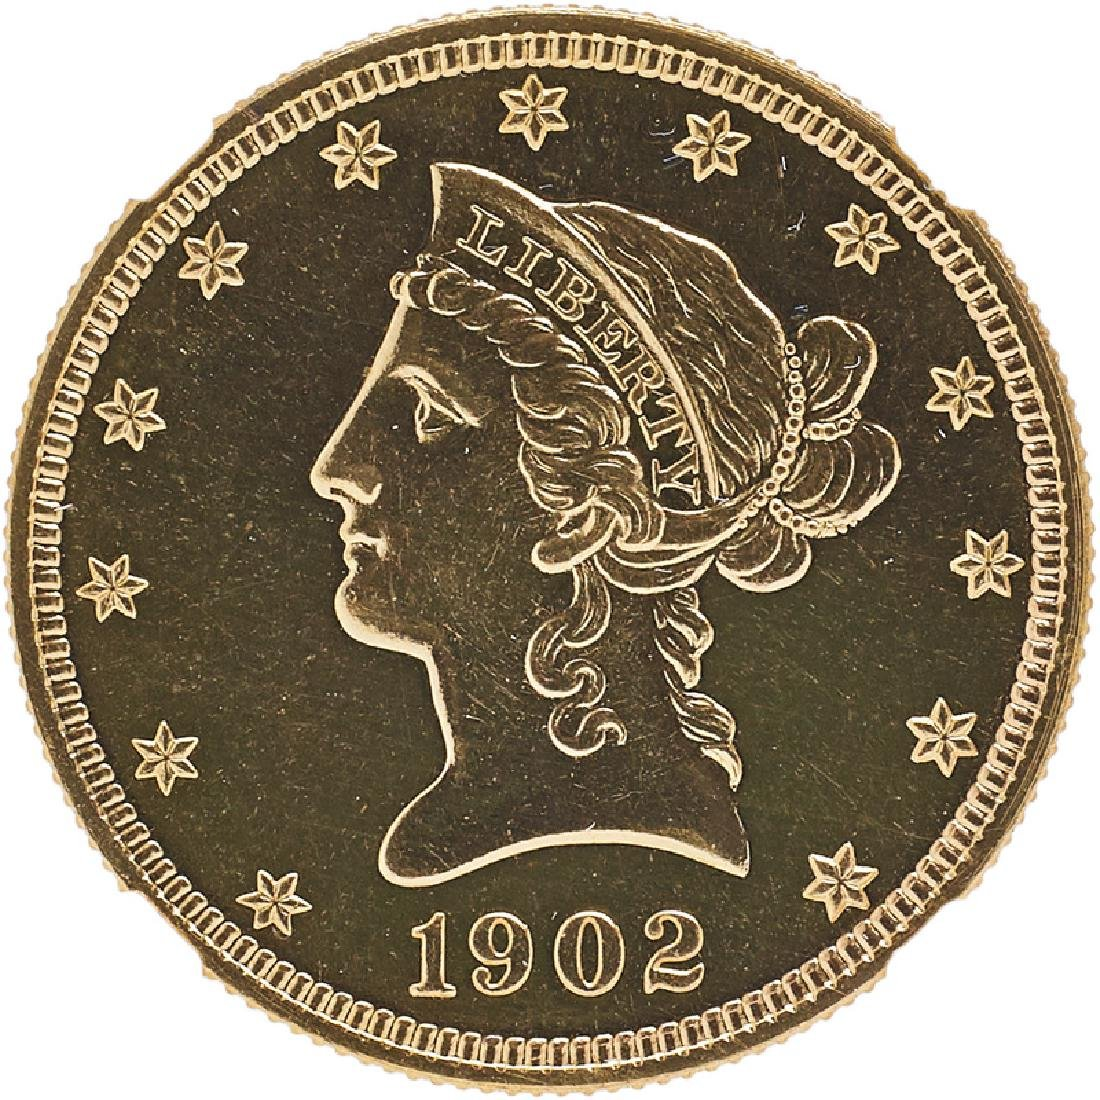 U.S. 1902 LIBERTY $10 GOLD PROOF COIN